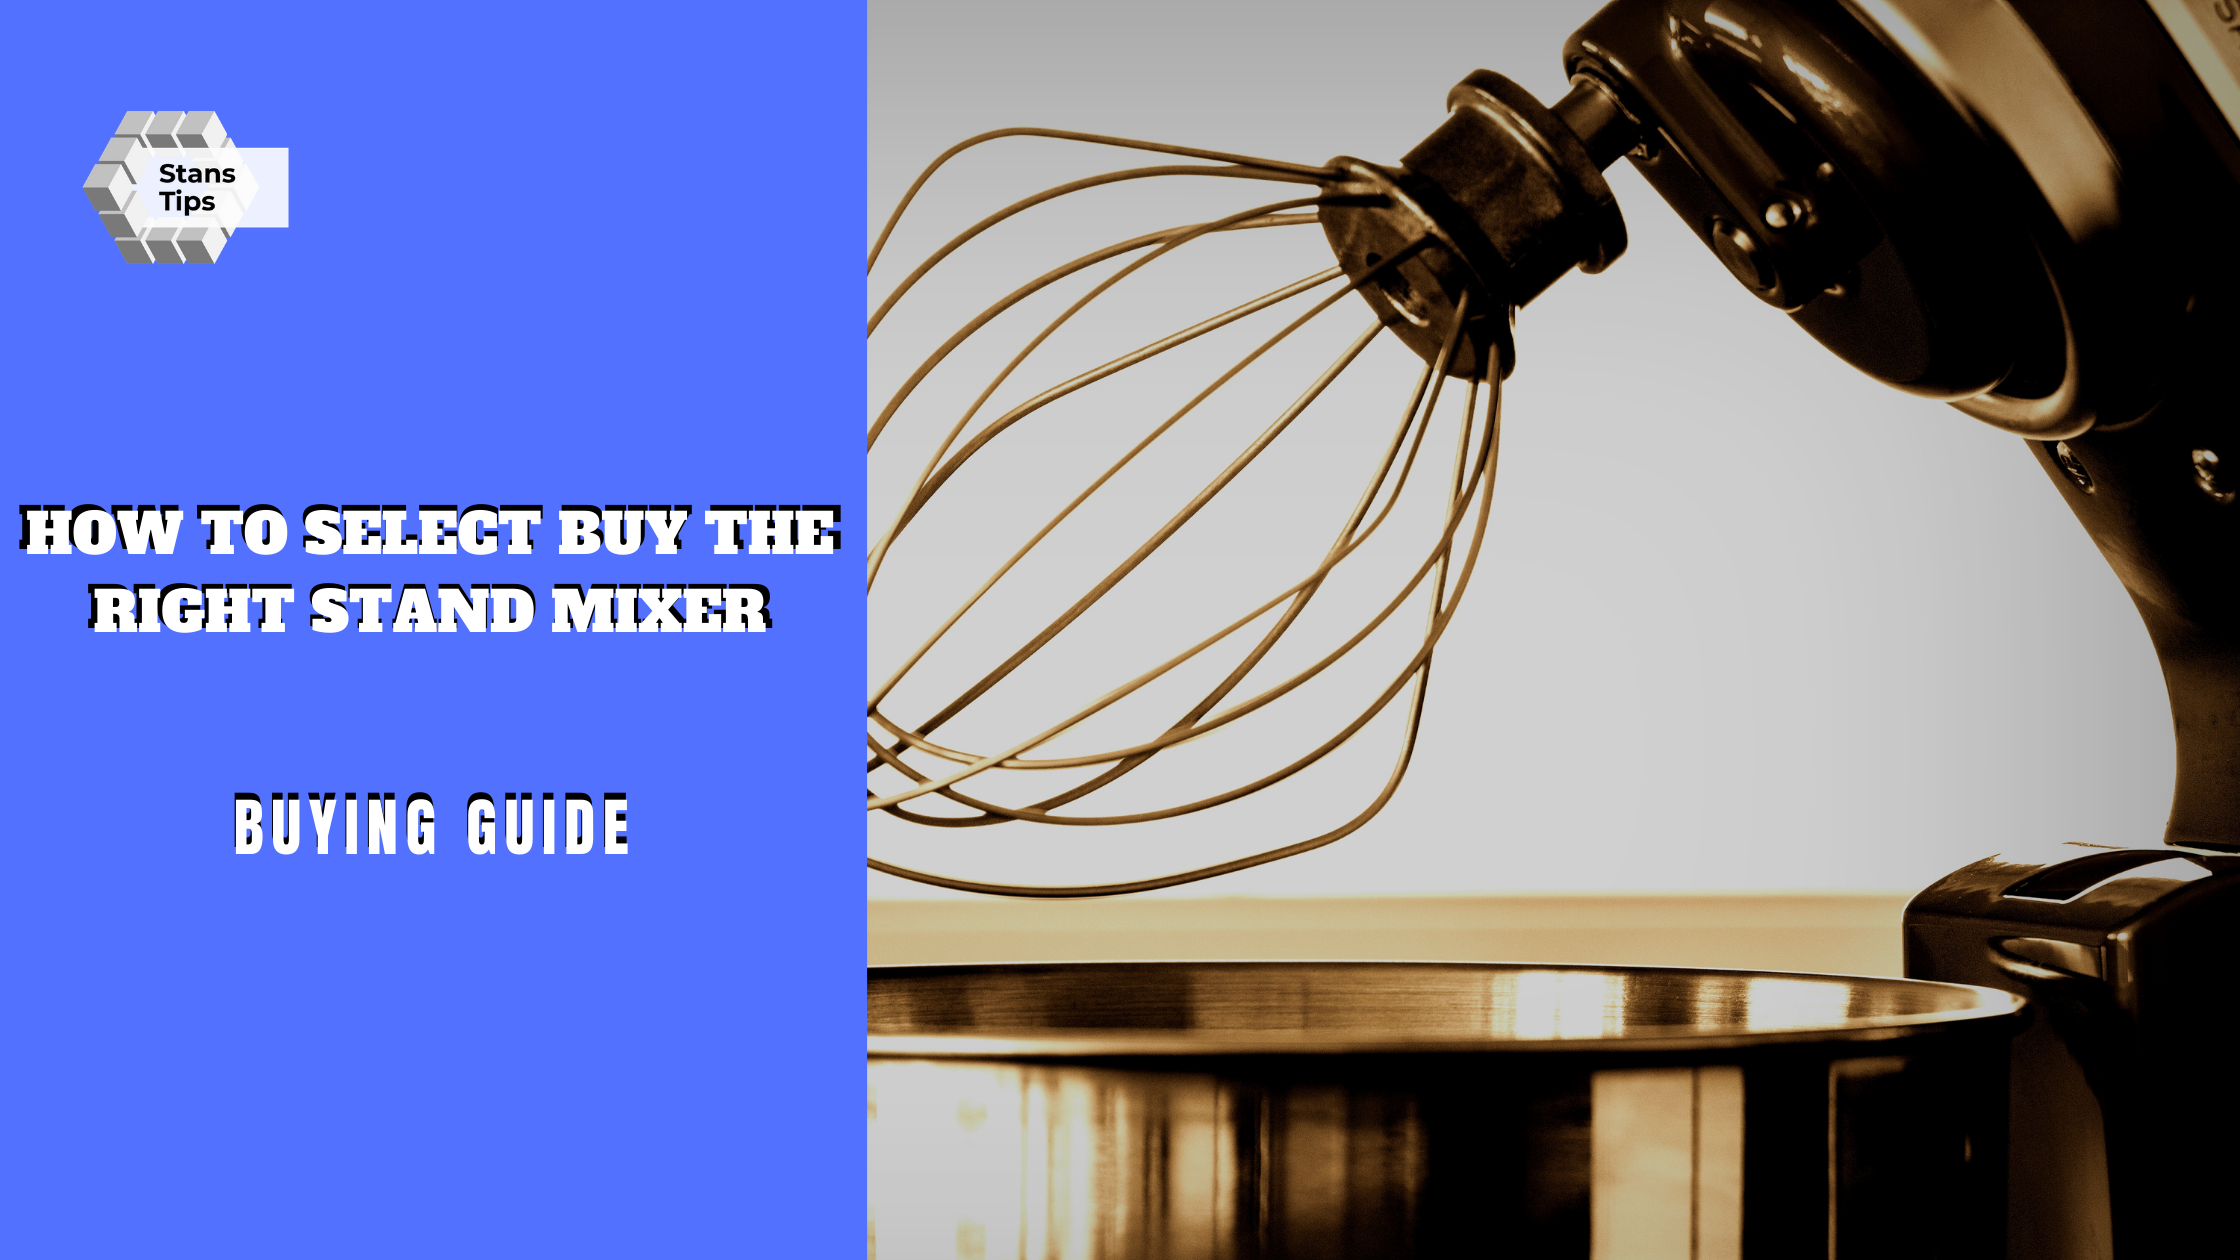 How to select buy the right stand mixer